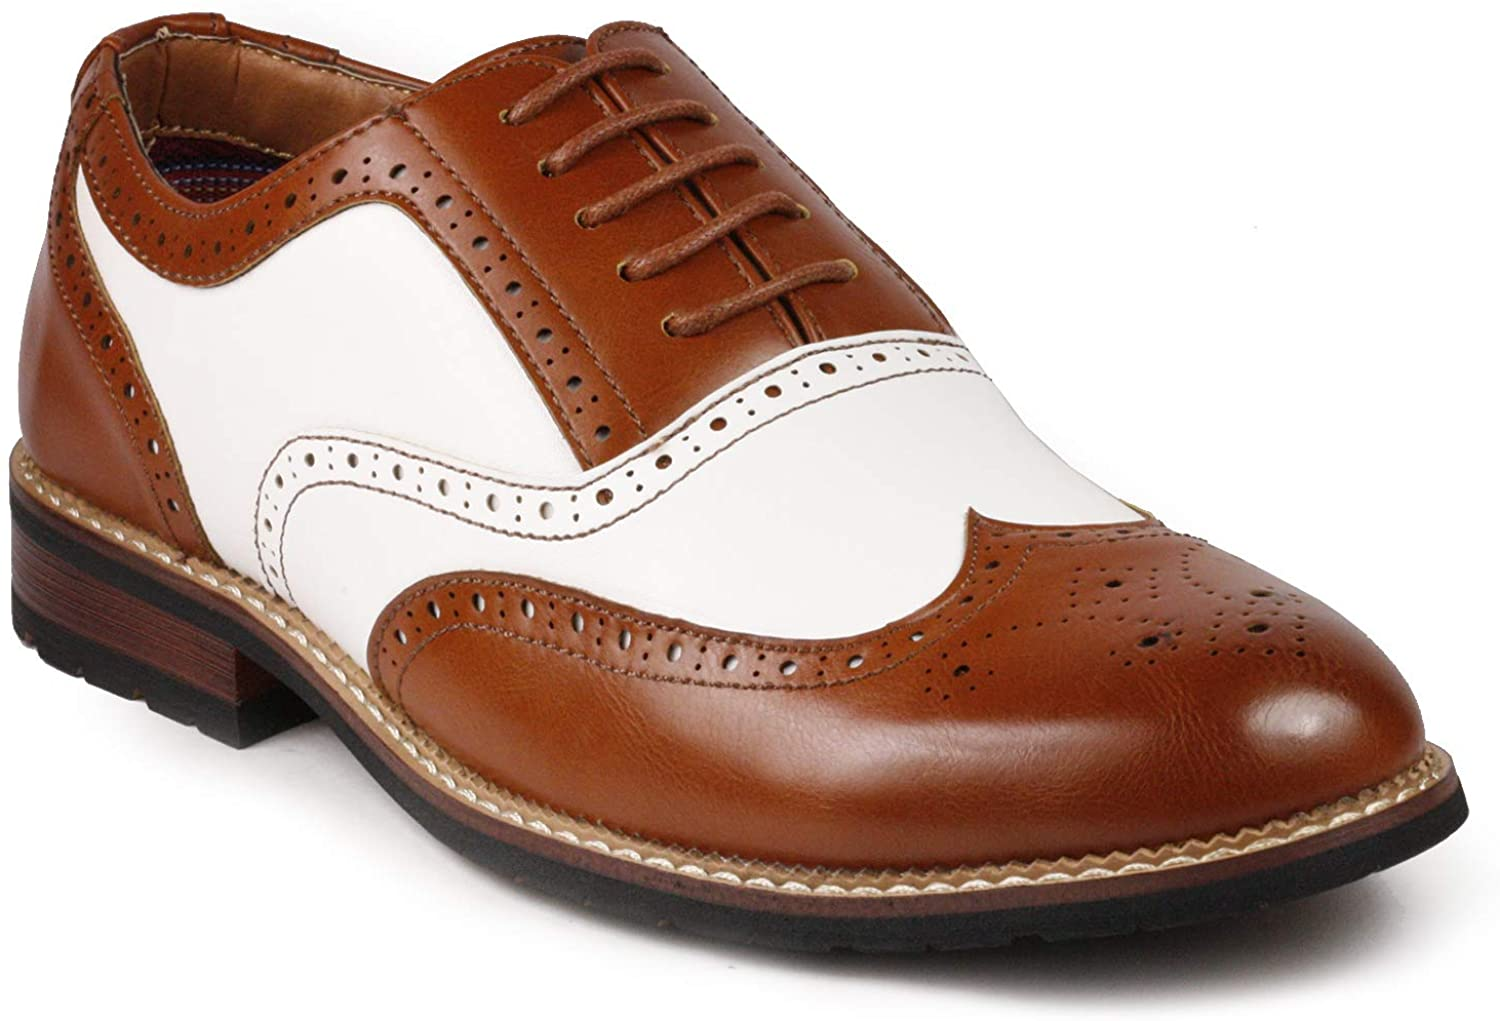 Selling and selling Metrocharm MC315 Men's Wing Tip Up Cheap Shoe Oxford Lace